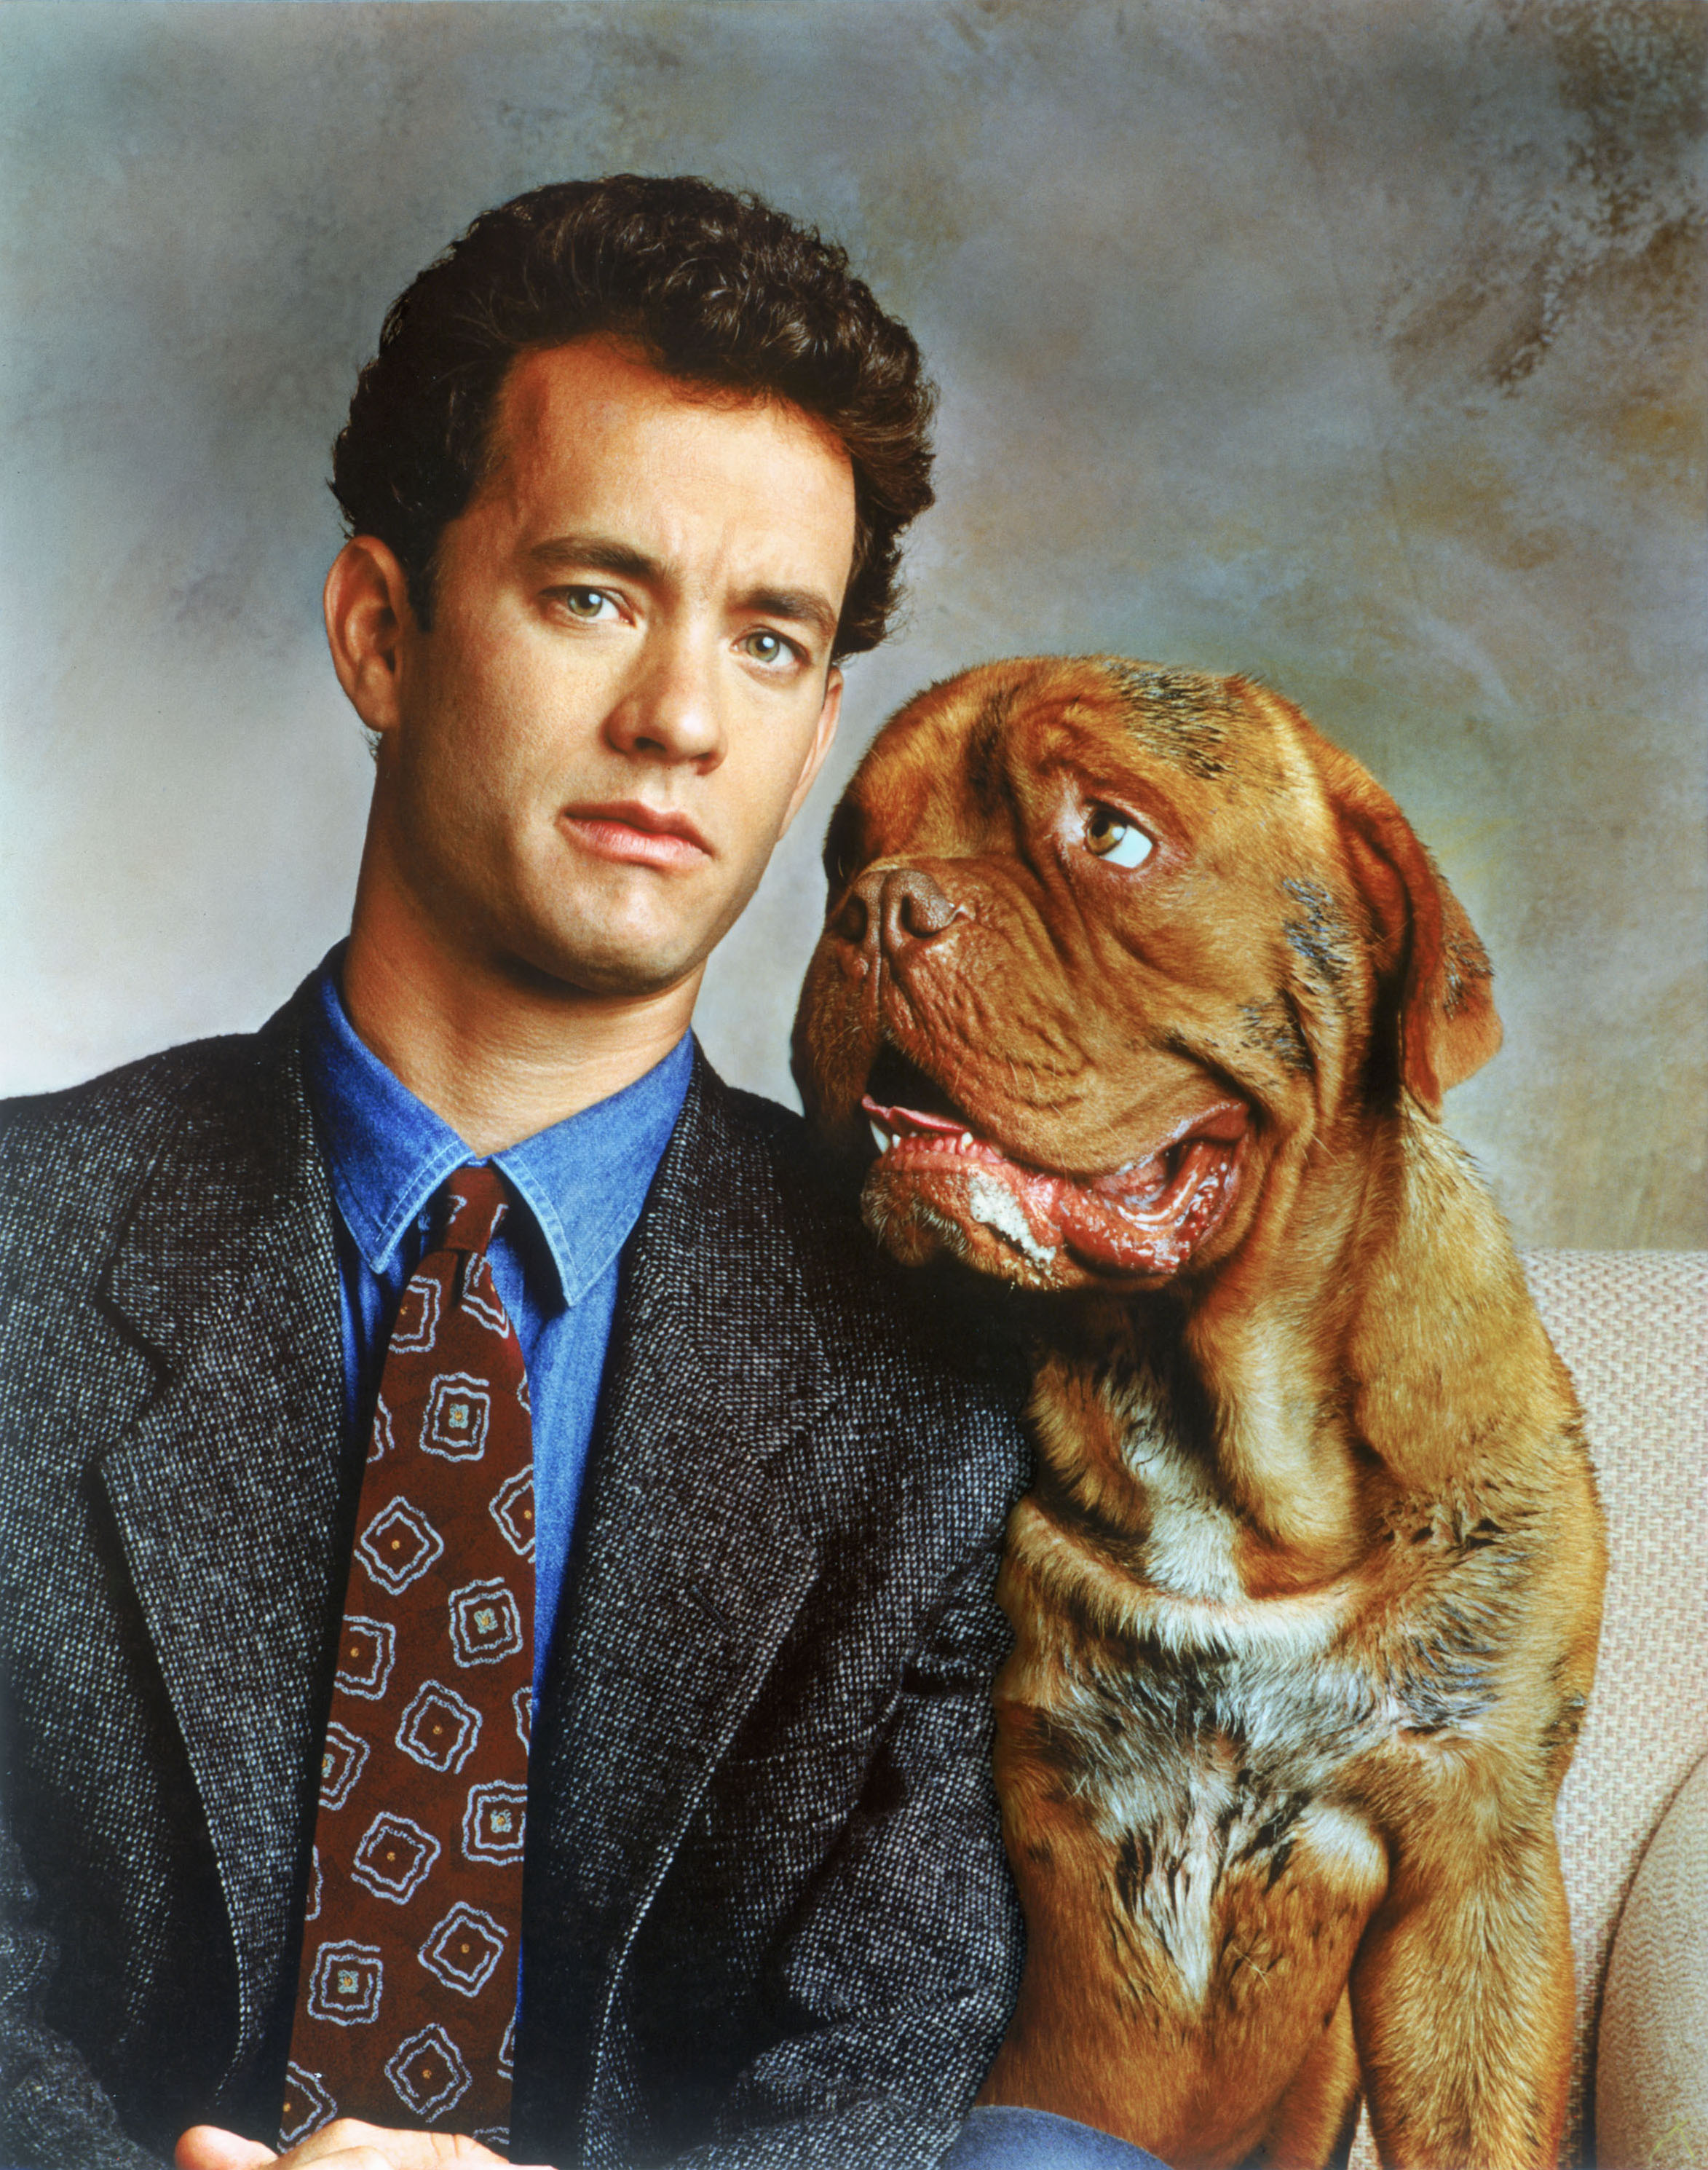 Turner-Hooch-tom-hanks-34677718-2346-2980.jpg